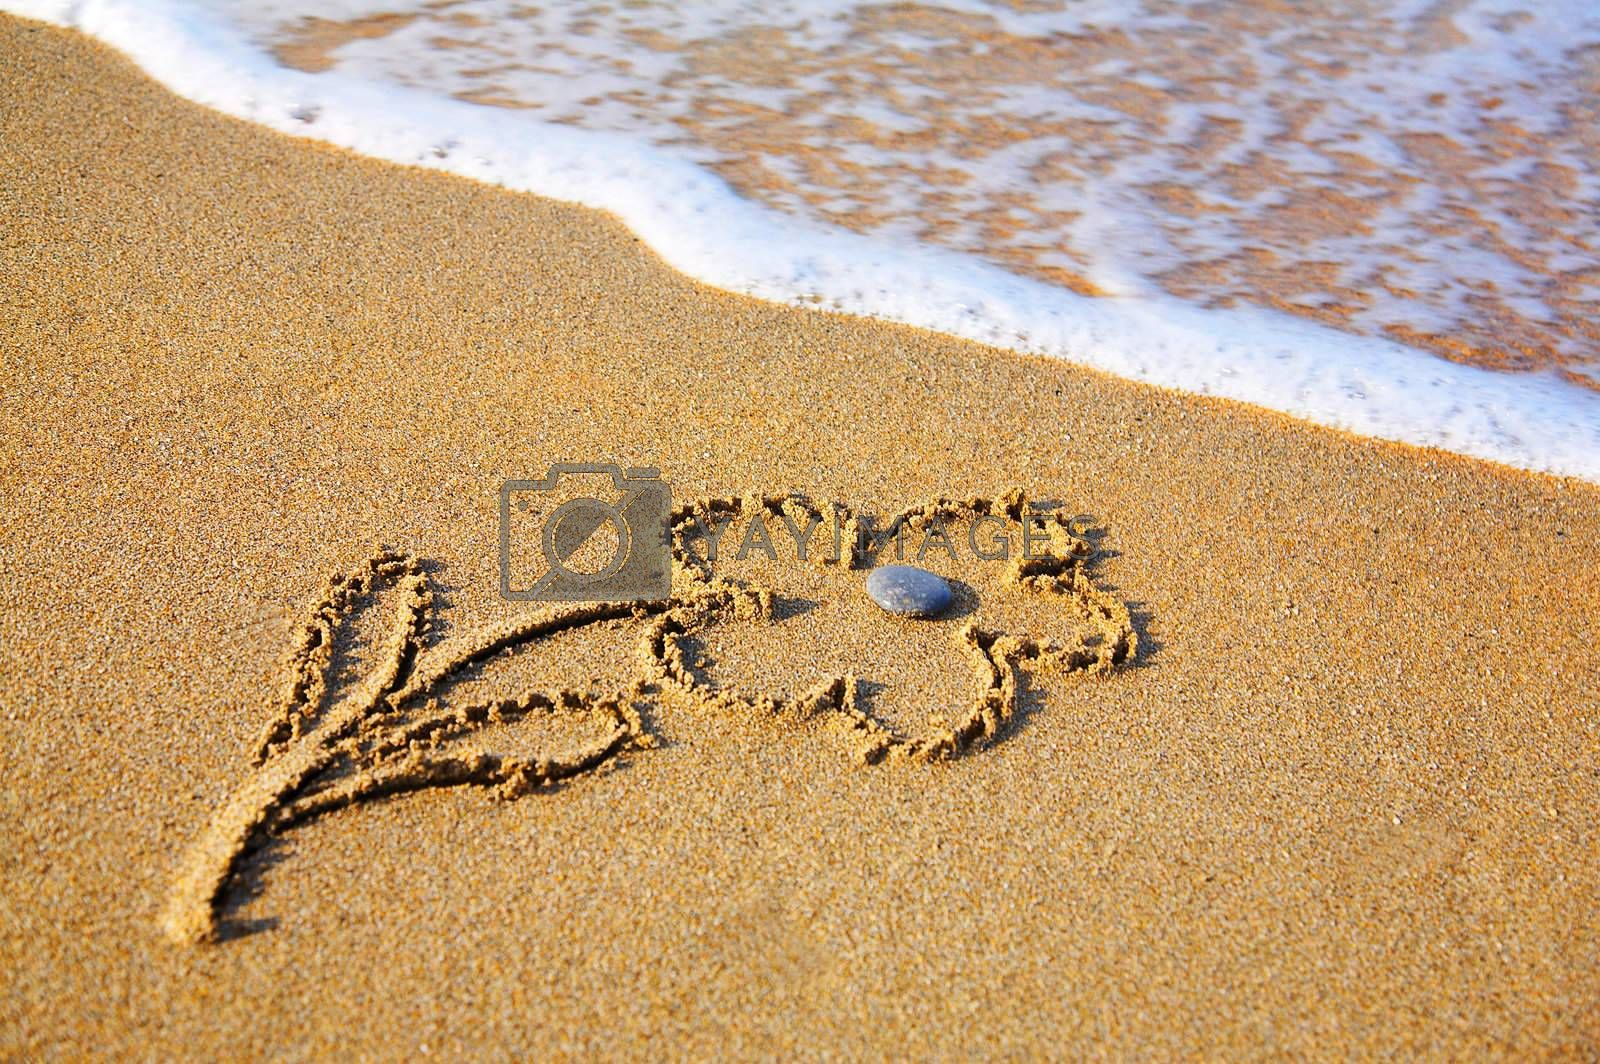 """Royalty free image of """"Flower"""" drawing at sand, with sea wave by DeusNoxious"""